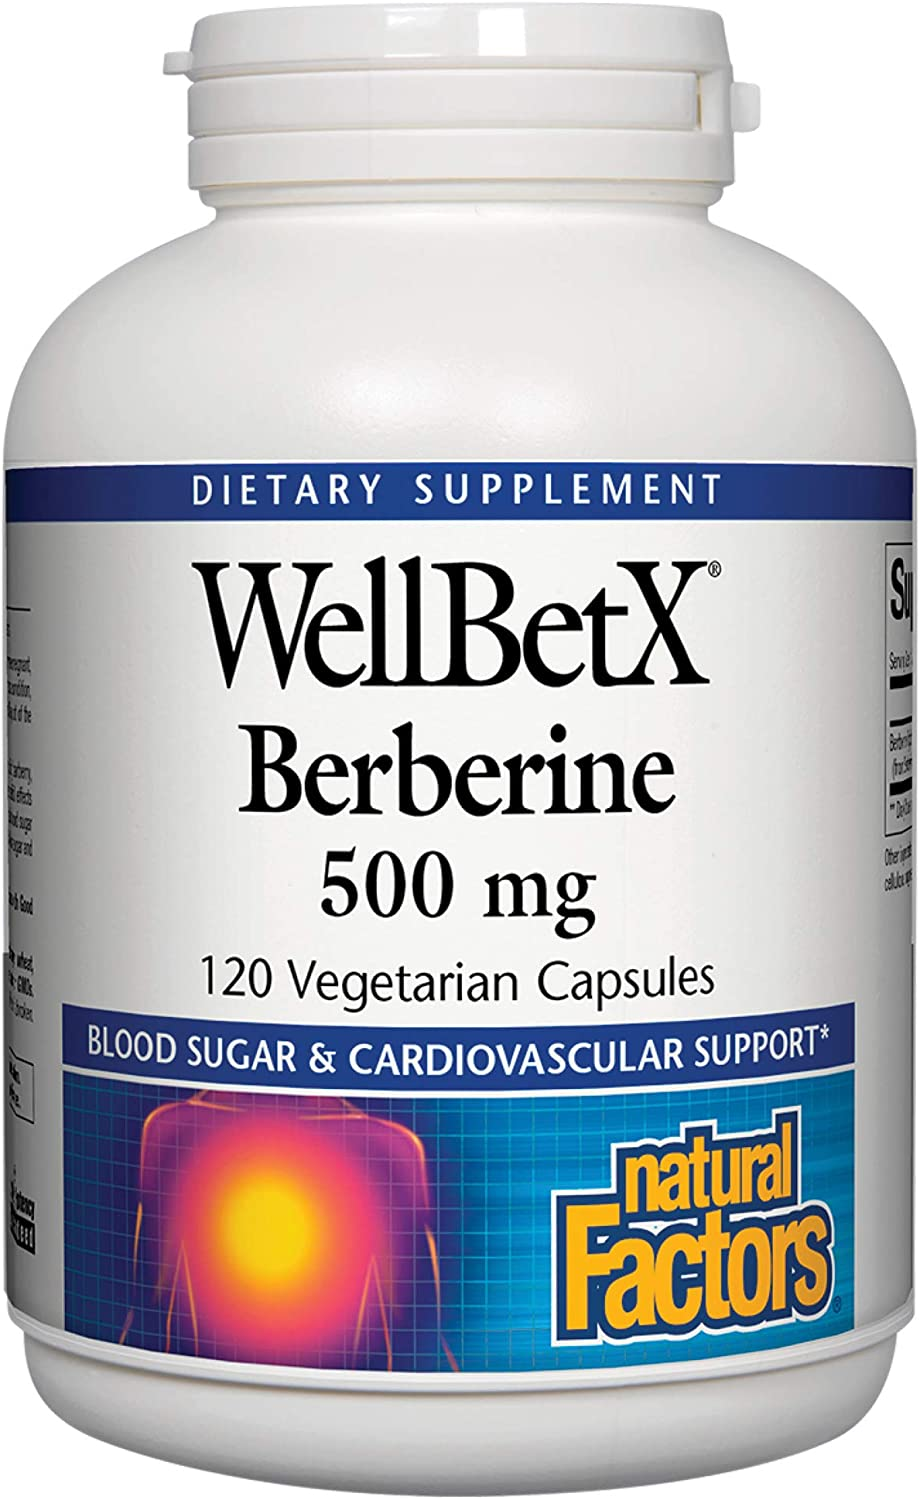 WellBetX Berberine 500 mg by Natural Factors for Healthy Blood Sugar and Cholesterol Levels Already Within The Normal Range, 120 Vegetarian Capsules 120 Servings